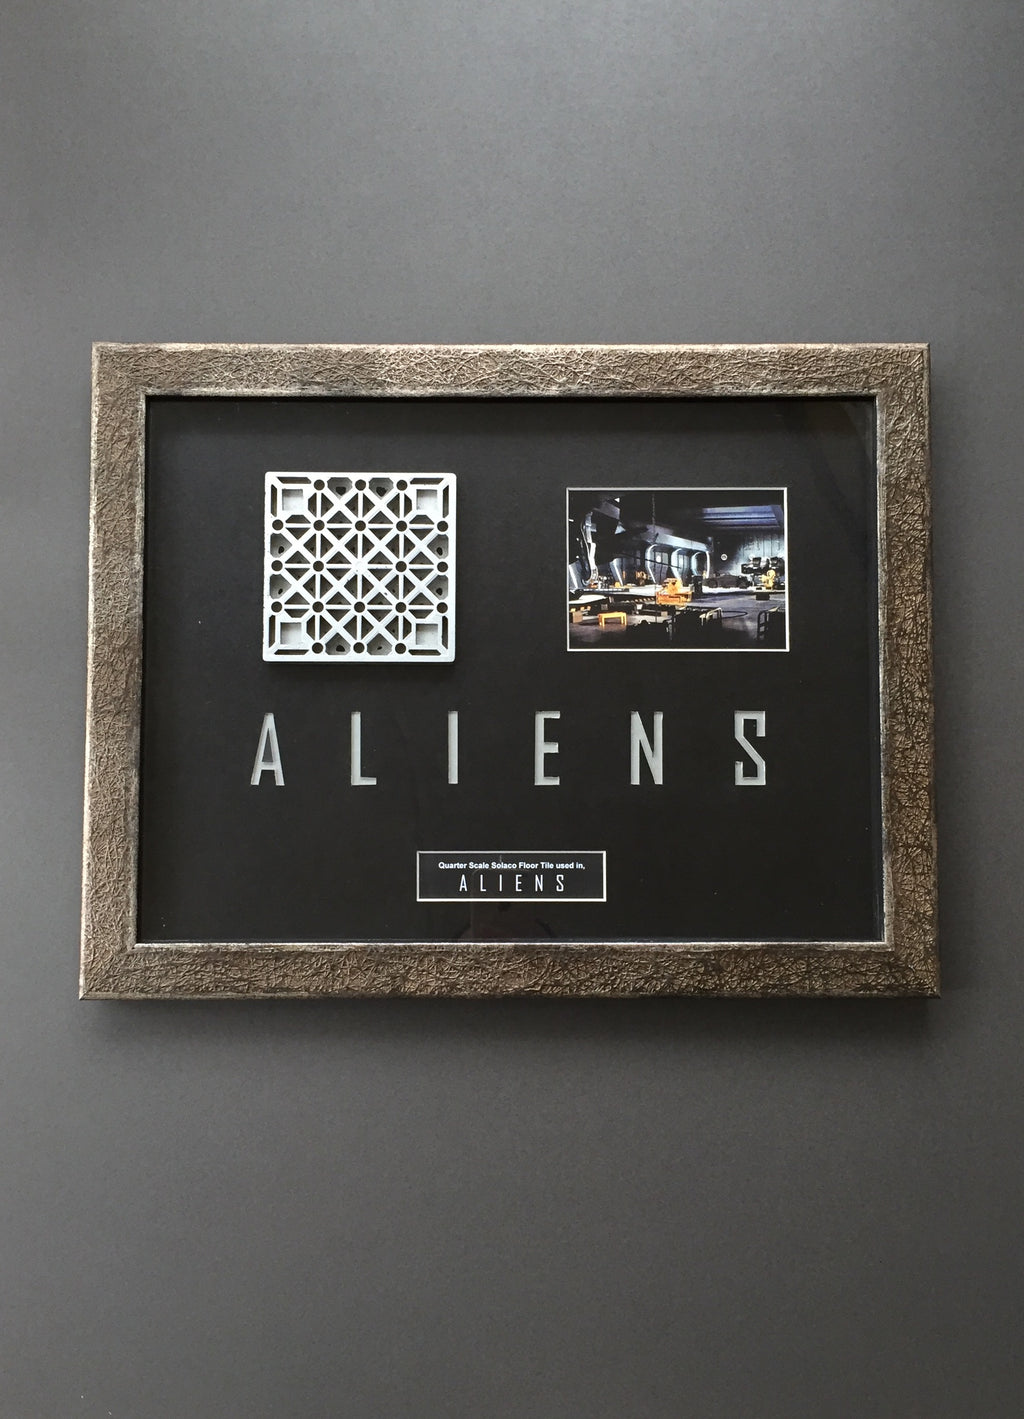 Aliens (1986) - Solaco Quarter Scale Floor Tile (SOLD)